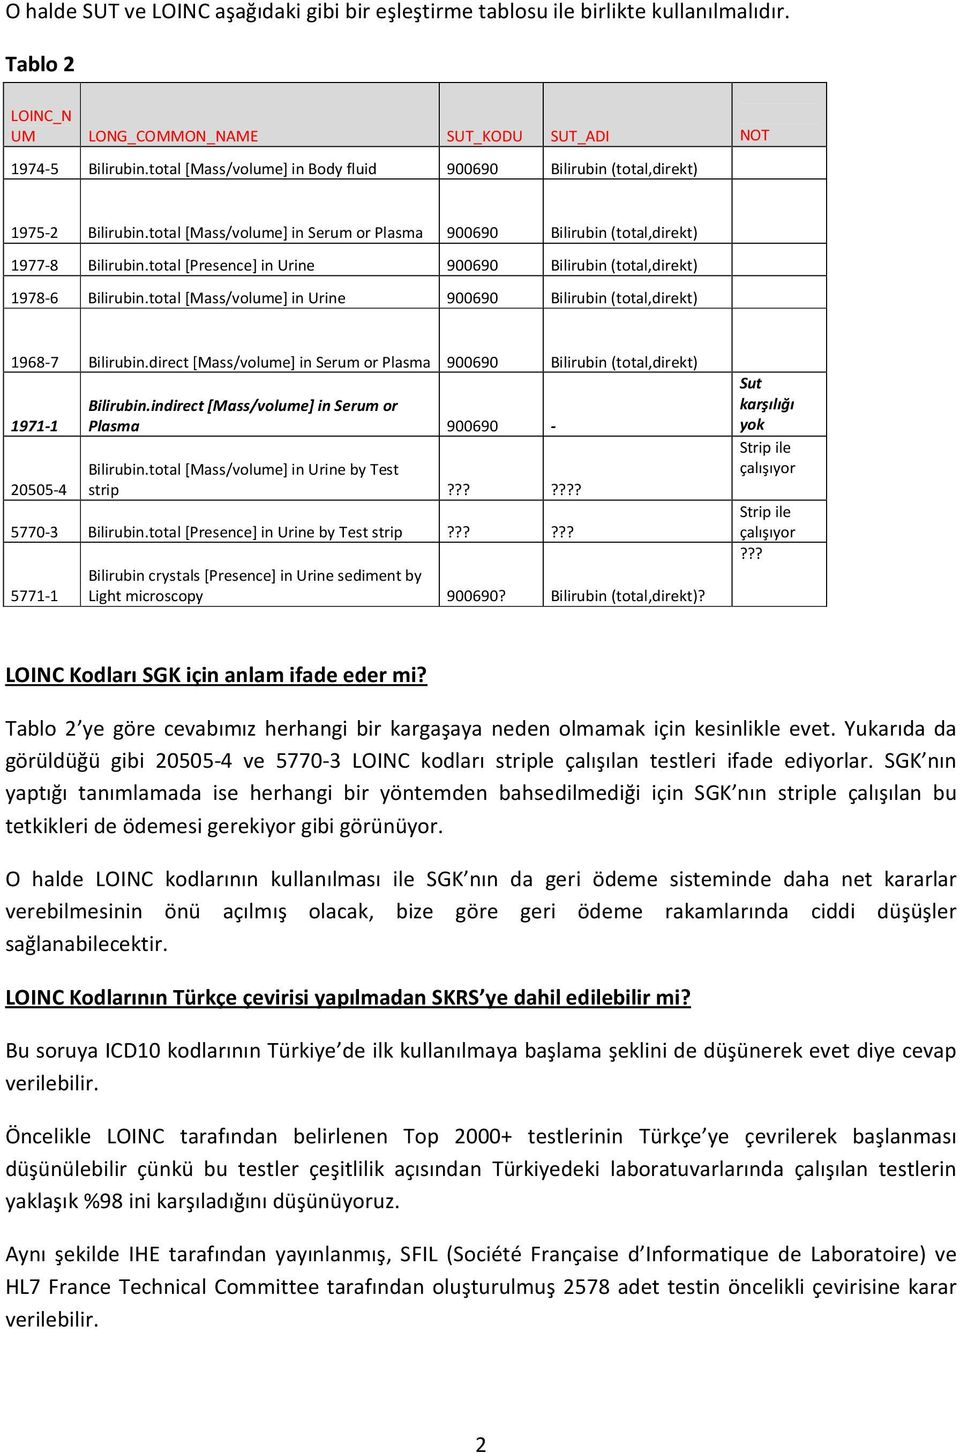 Bilirubin (total,direkt) 1978-6 Urine 900690 Bilirubin (total,direkt) 1968-7 Bilirubin.direct Serum or Plasma 900690 Bilirubin (total,direkt) 1971-1 20505-4 Bilirubin.